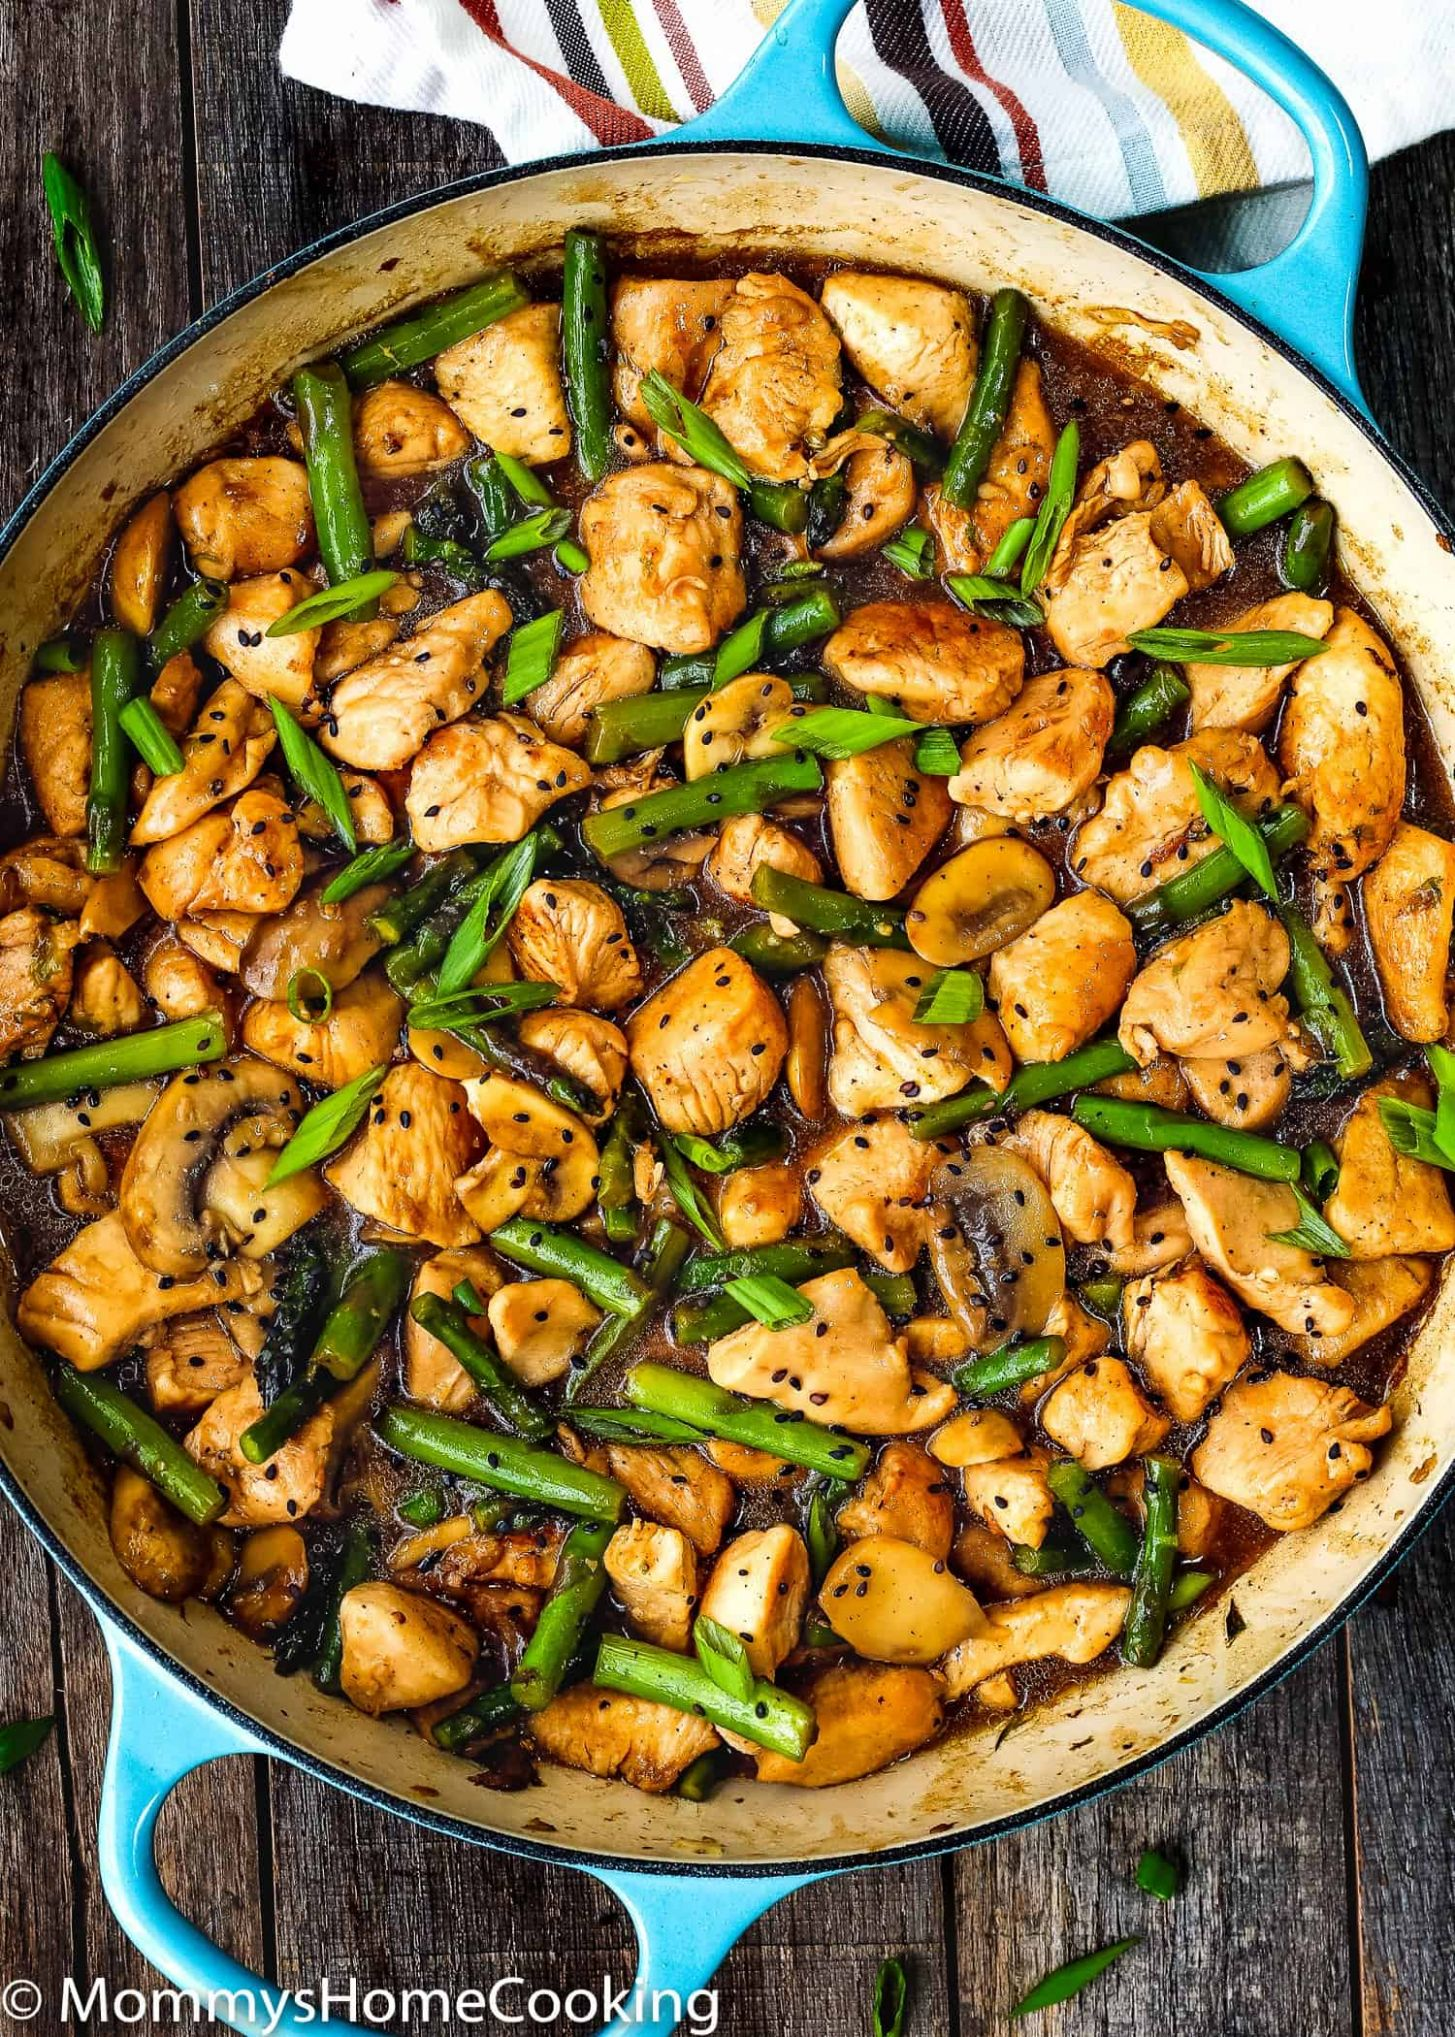 Easy Healthy Chicken and Asparagus Skillet - Food Recipes Chicken